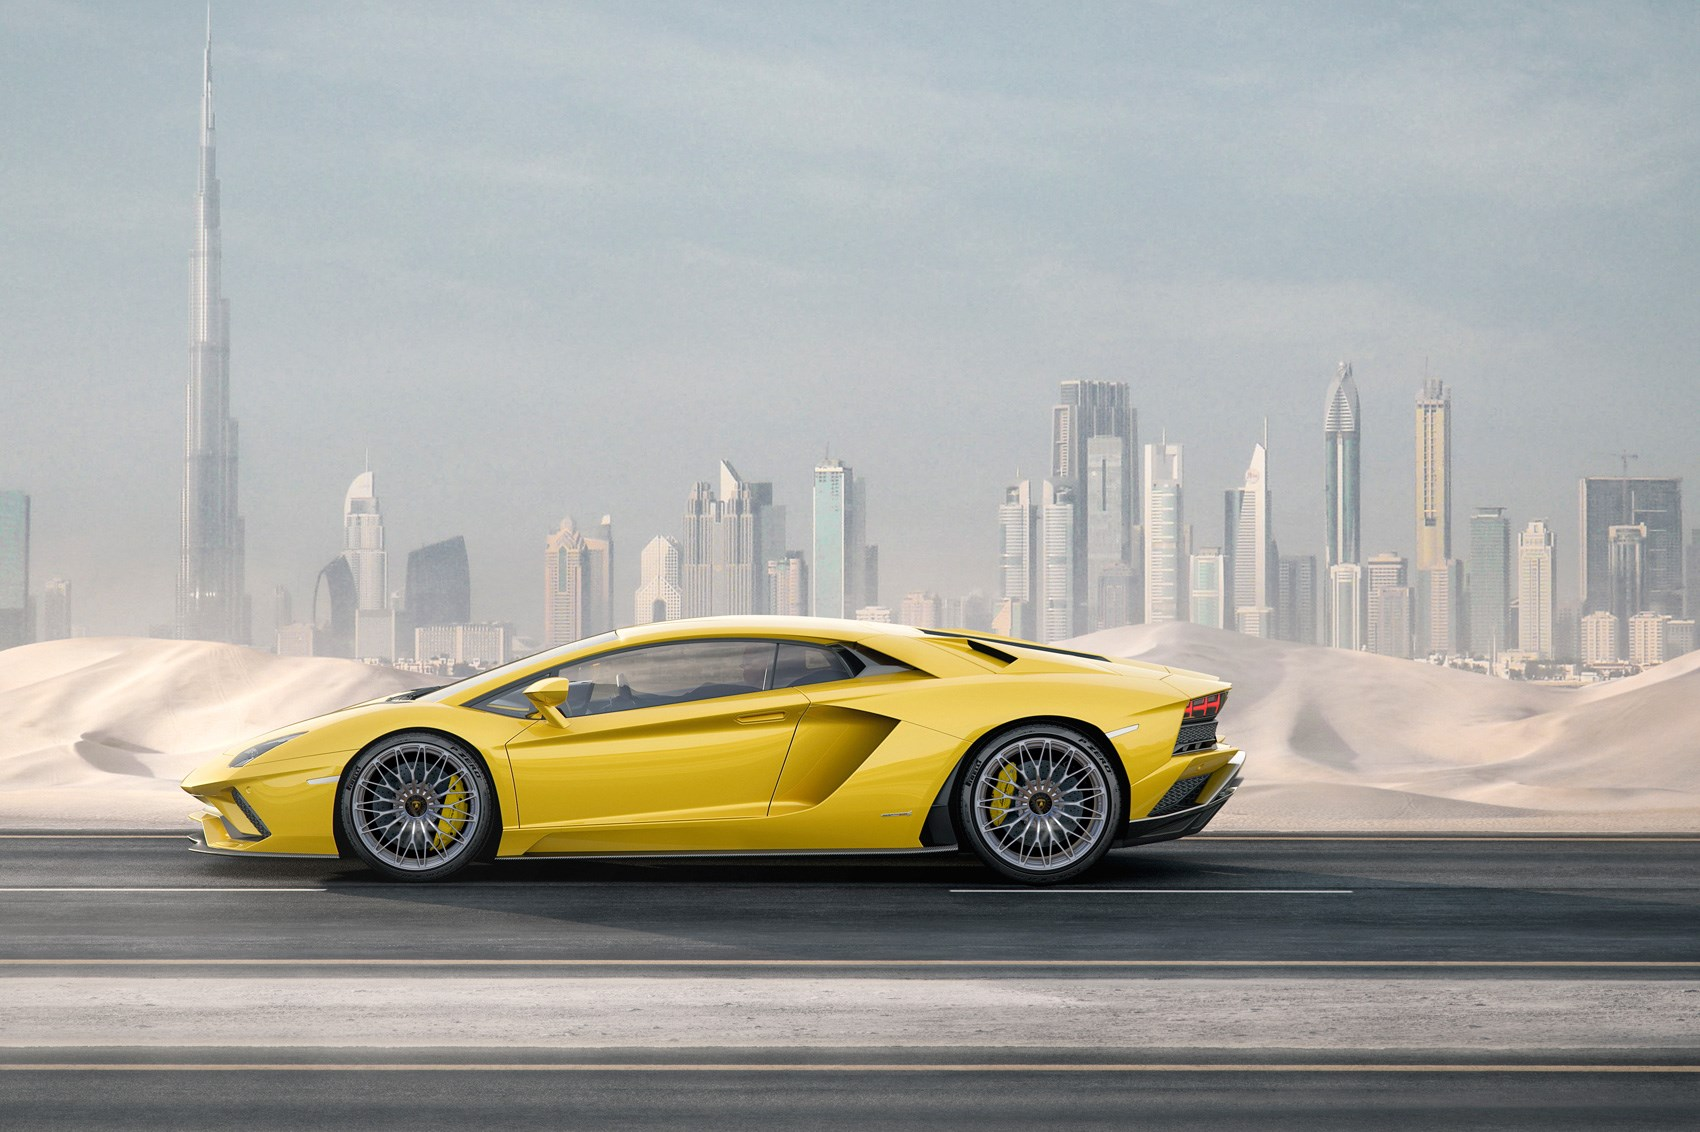 How much it Costs to Drive a Luxury car in Dubai in 2017